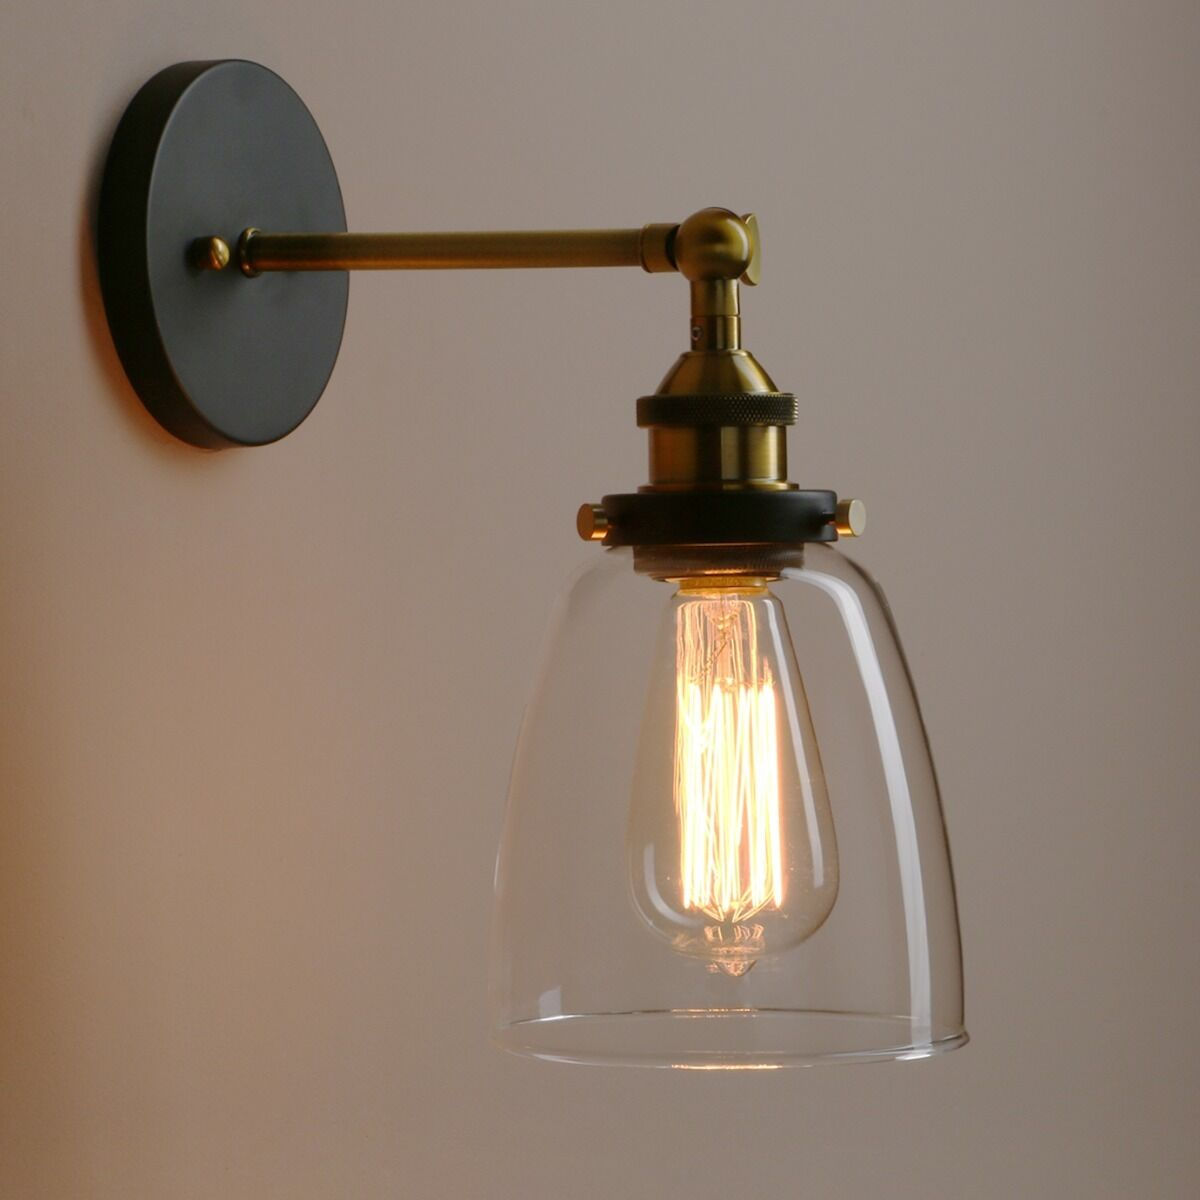 Retro Industrial Style Light Clear Glass Wall Lamp Antique Brass Vintage Sconce ? ?19.90 ...